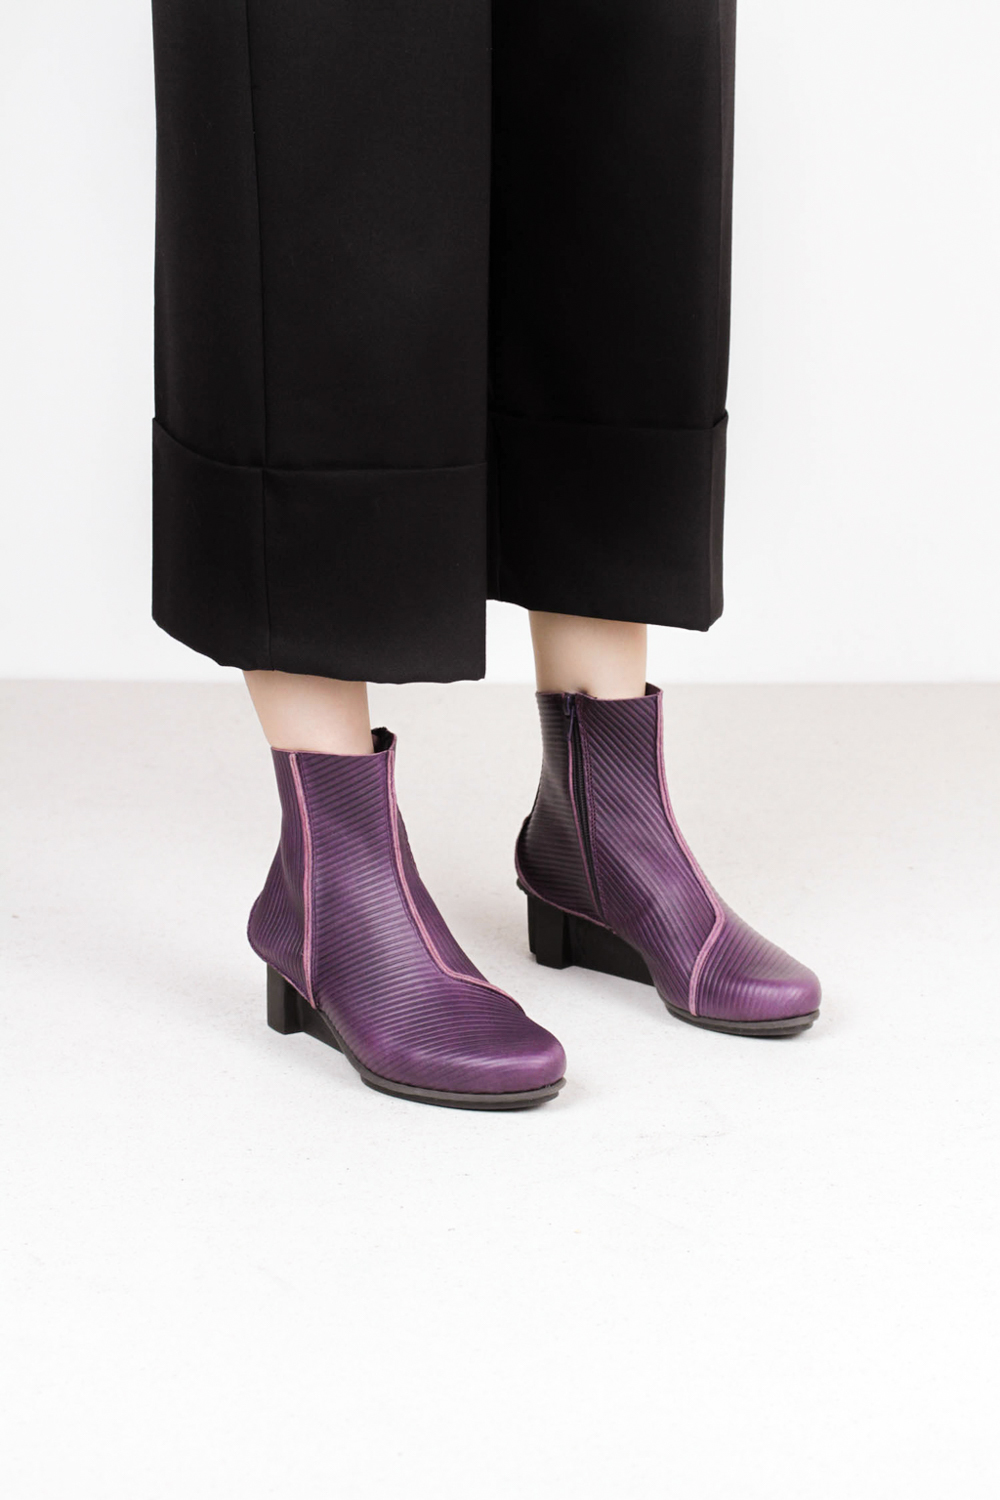 Trippen mere f notte crd xo mor leather boots